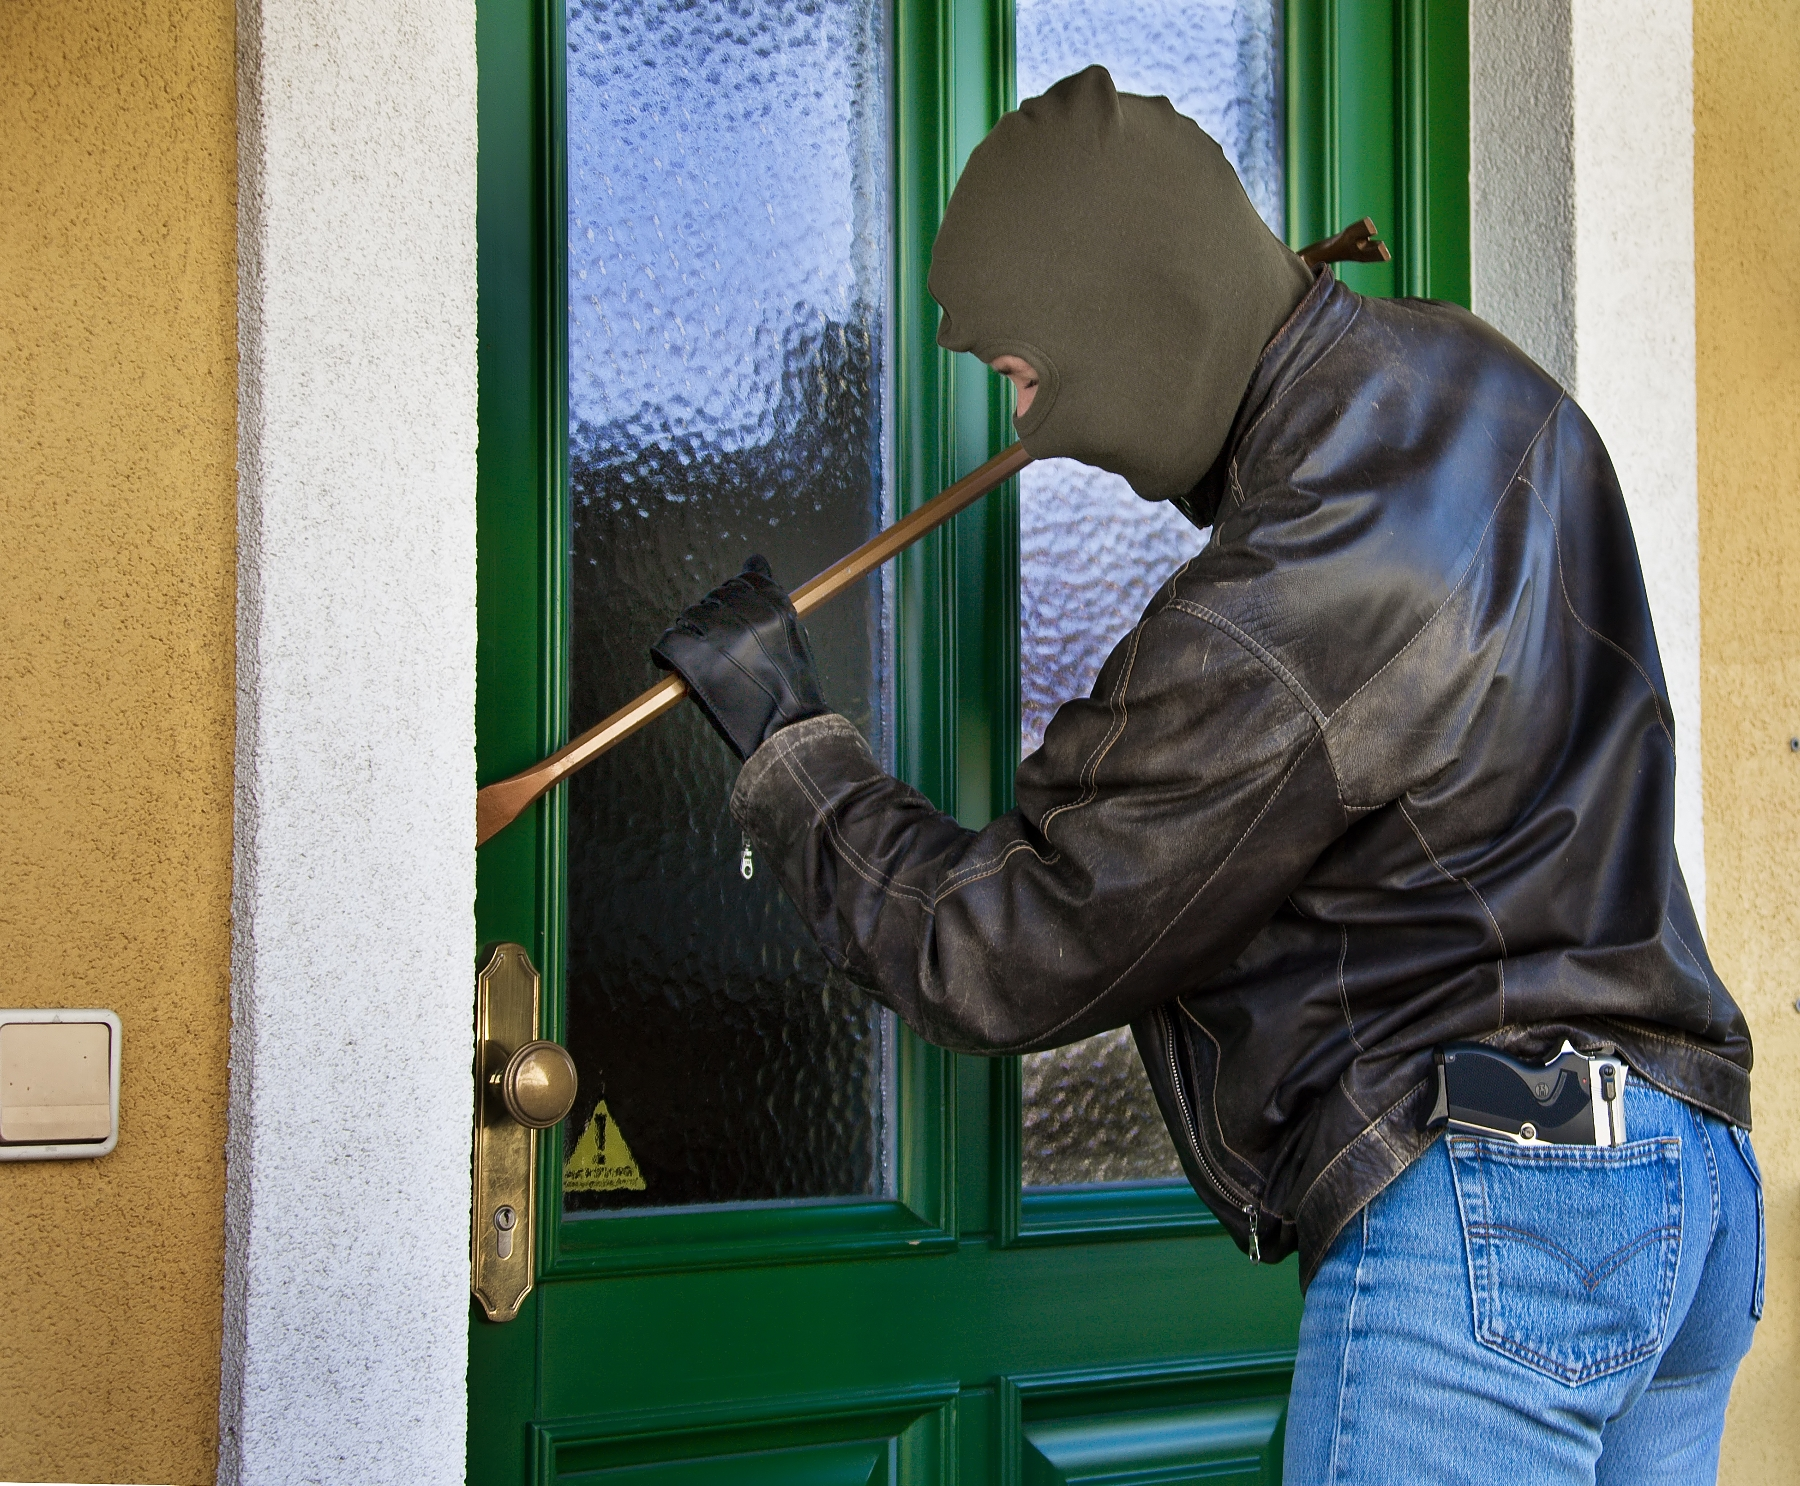 86 Burglars Reveal What They Look For Before Breaking Into a Home